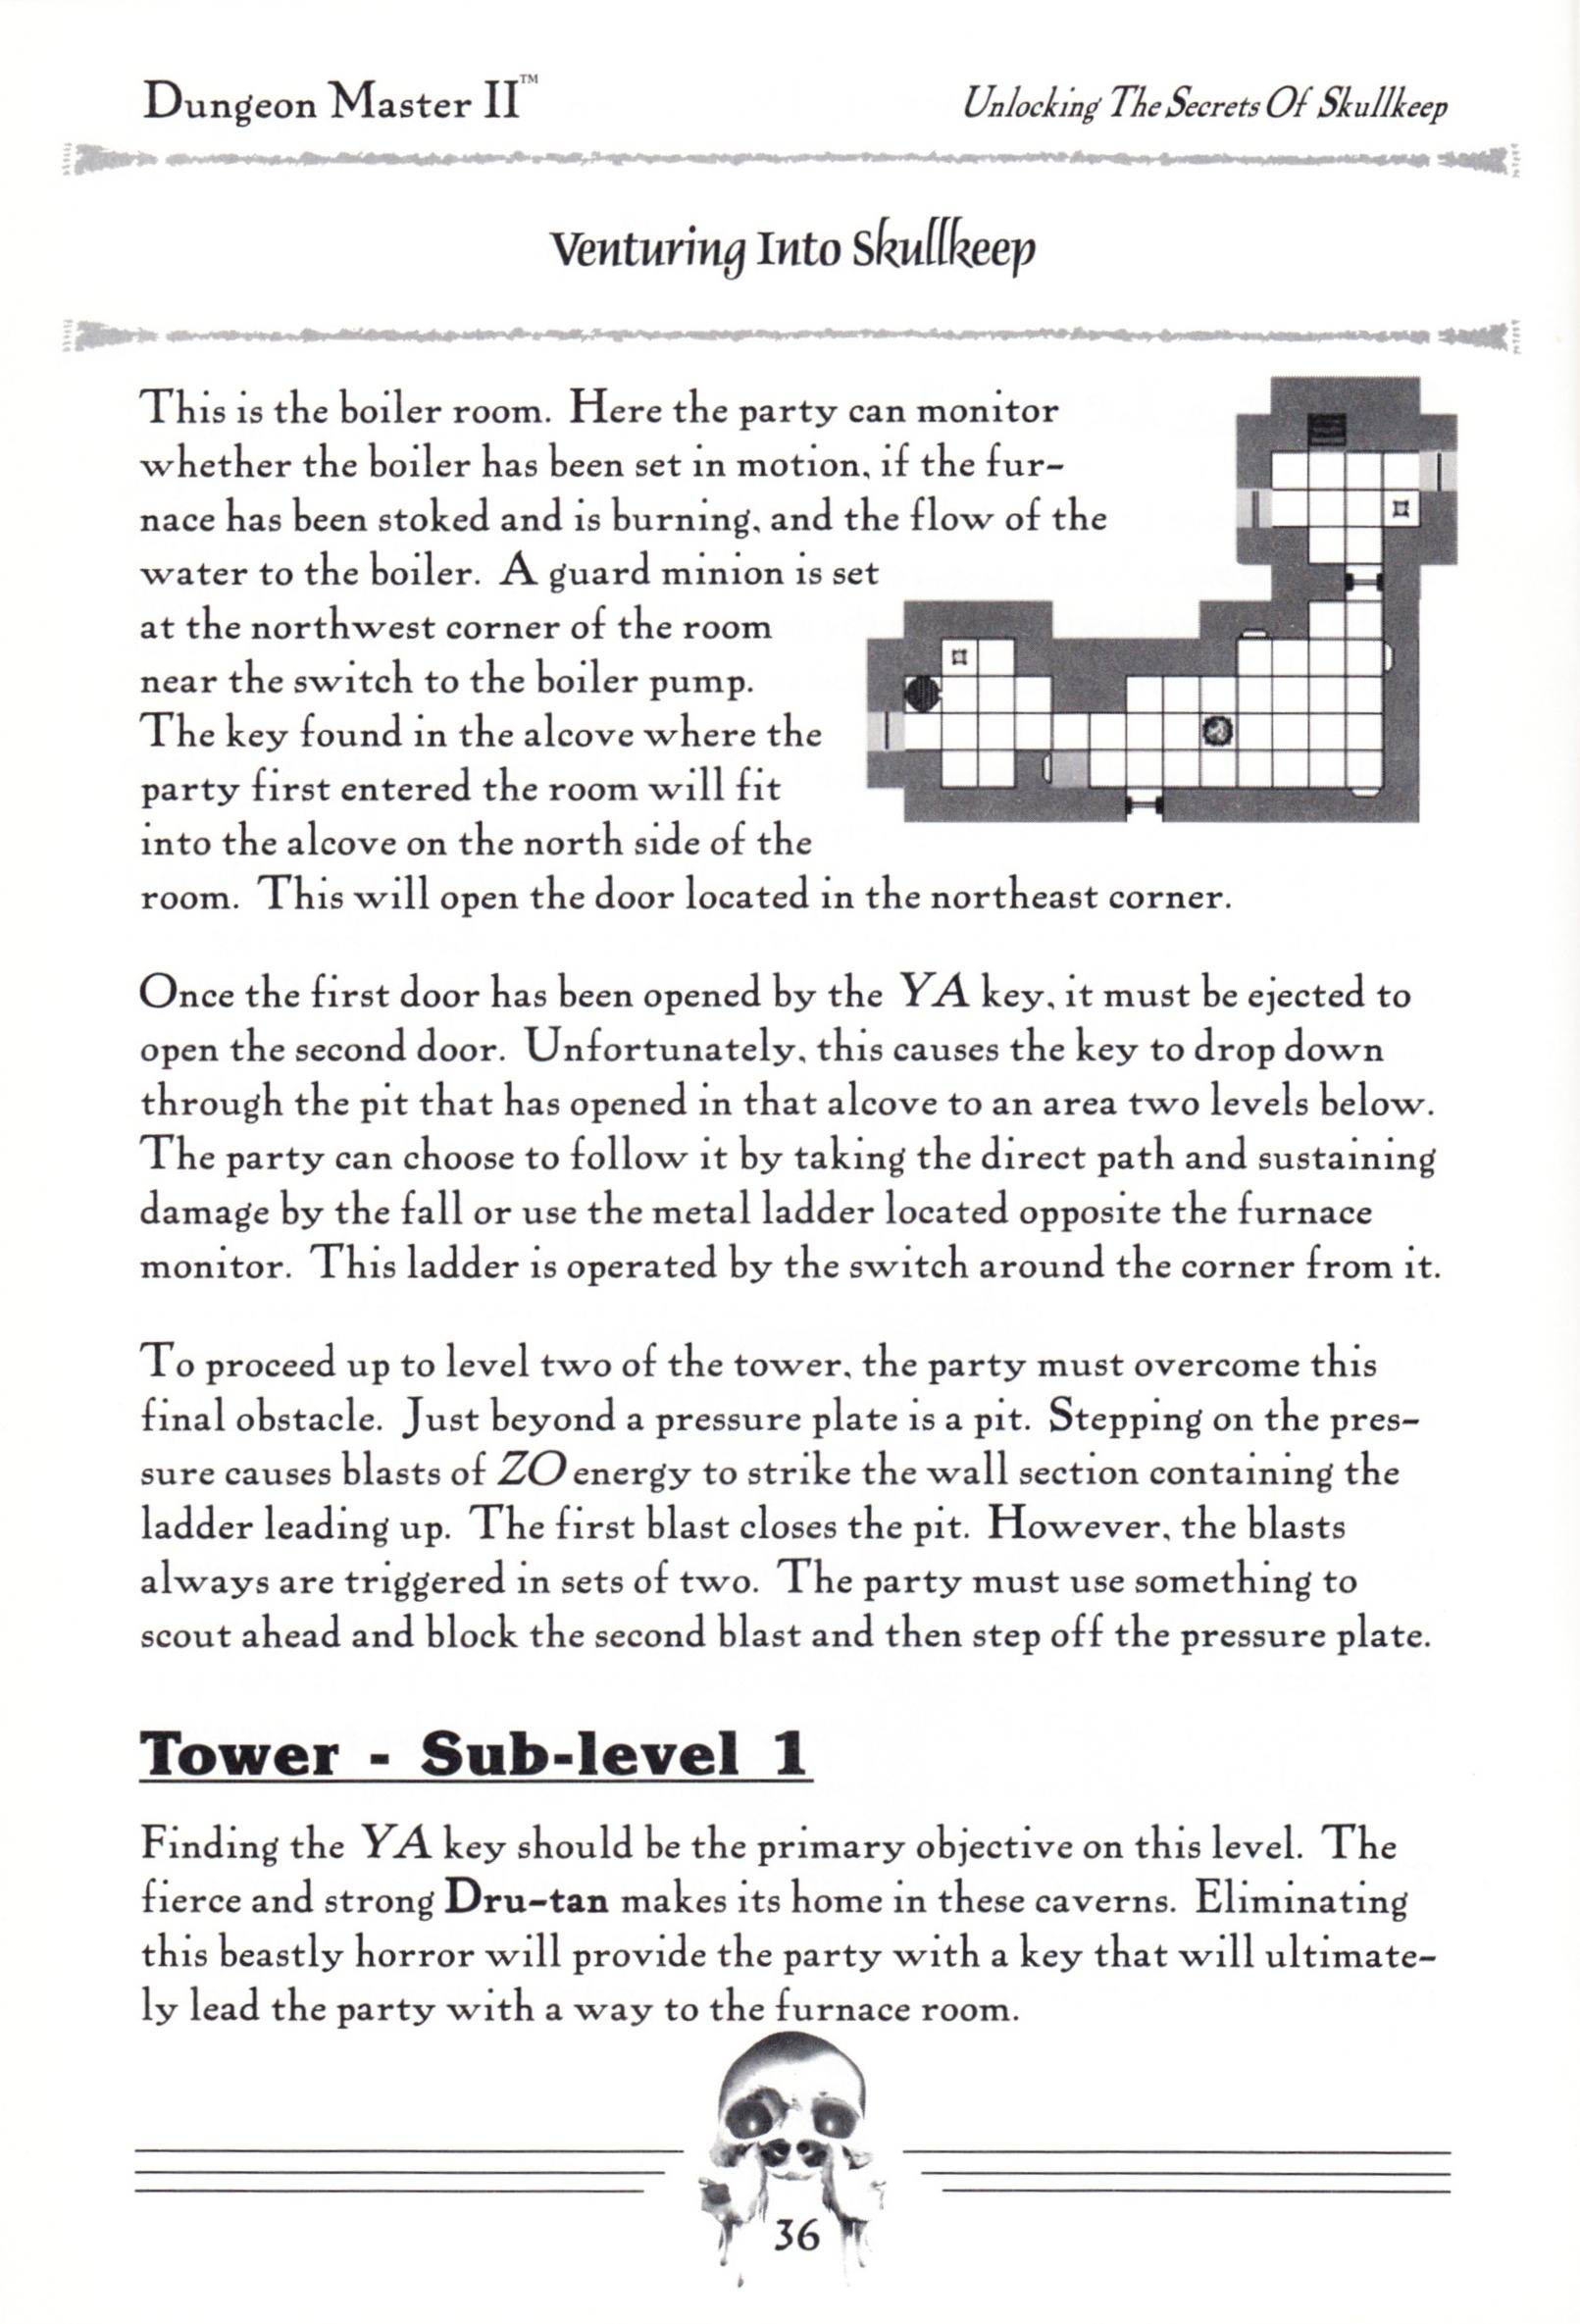 Hint Book - Dungeon Master II Clue Book - US - Page 038 - Scan